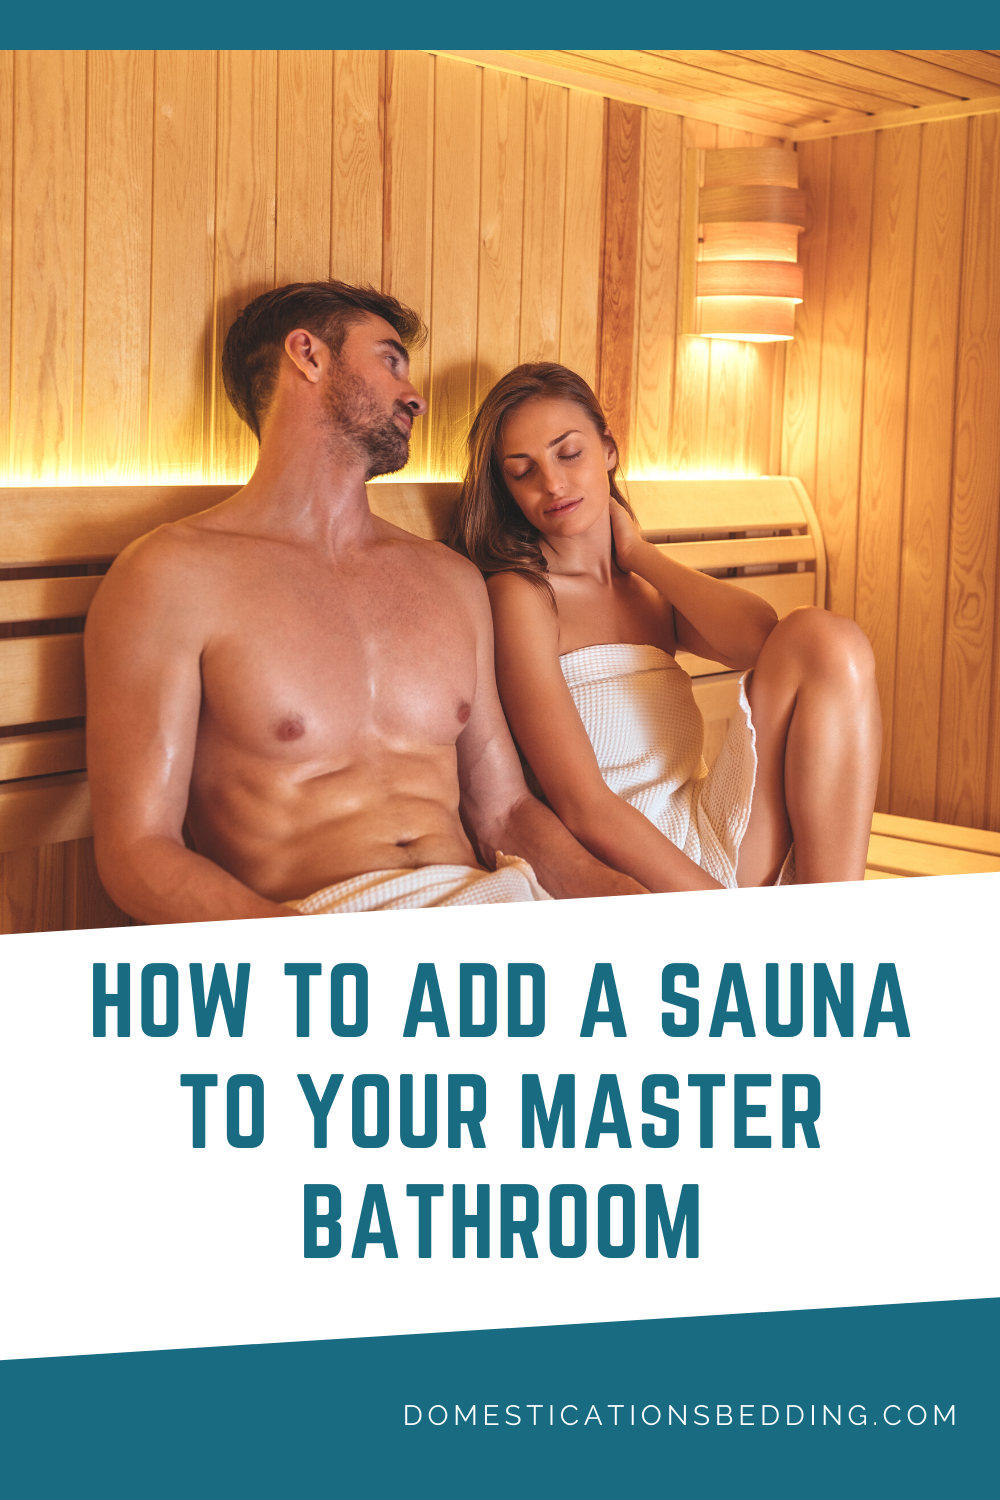 How To Add A Sauna To The Master Bathroom